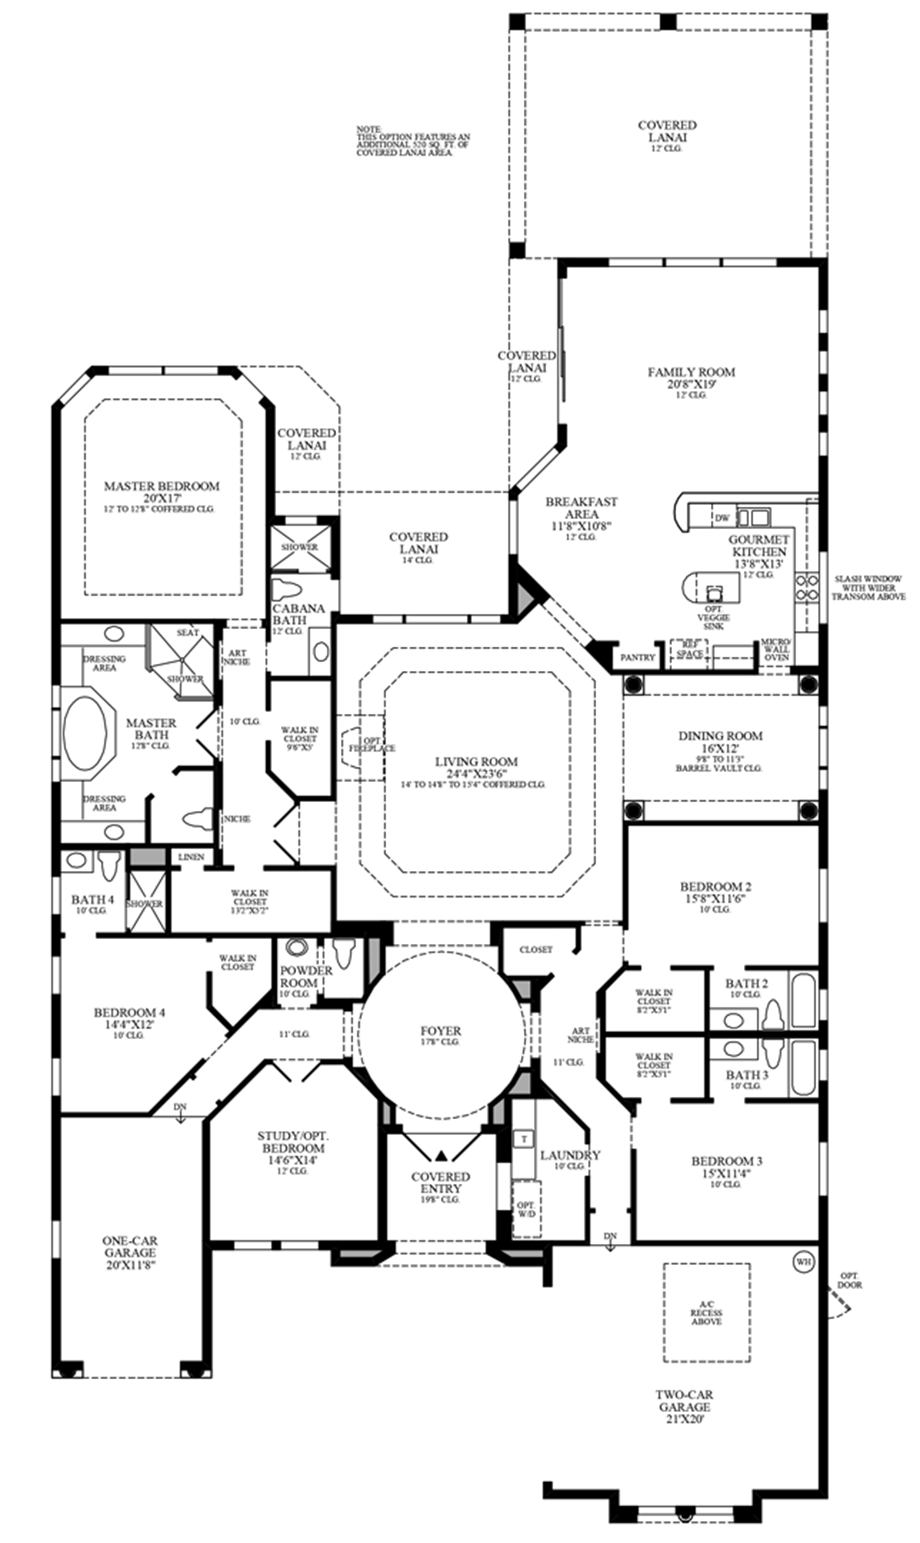 Optional Additional Lanai Floor Plan